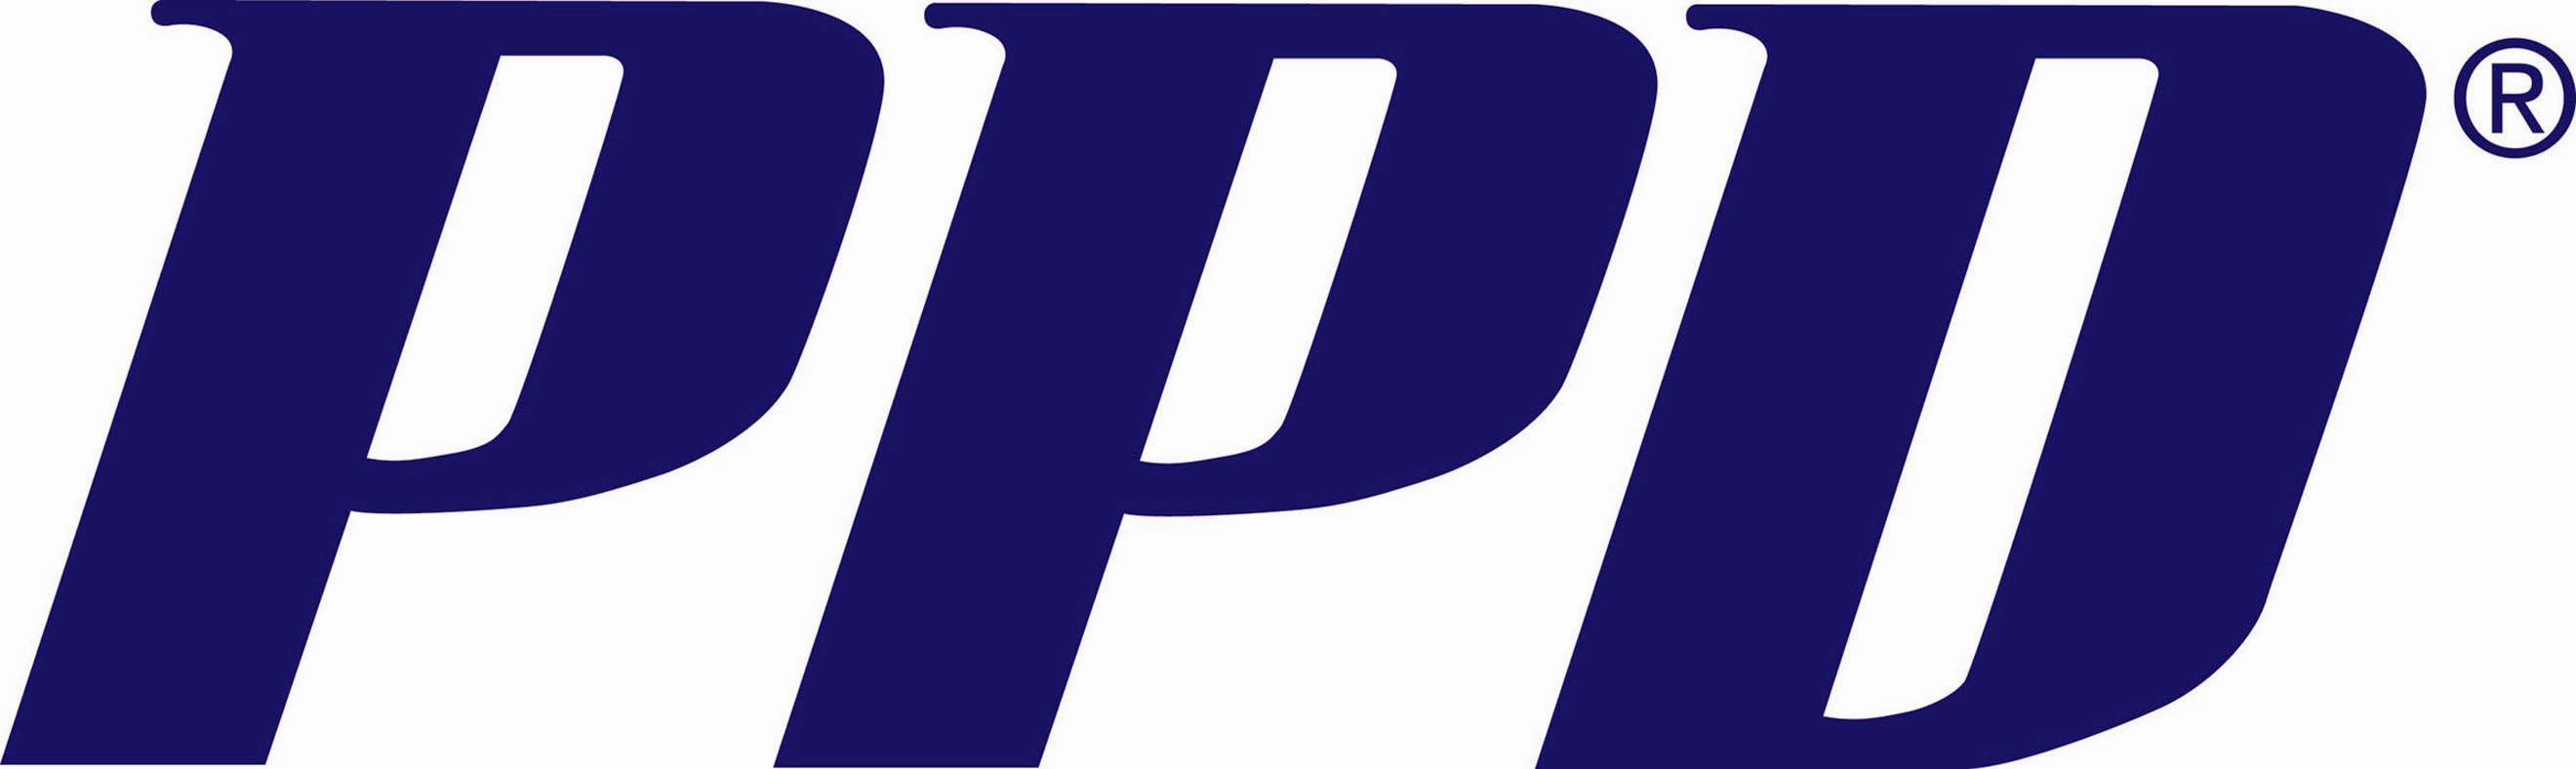 PPD